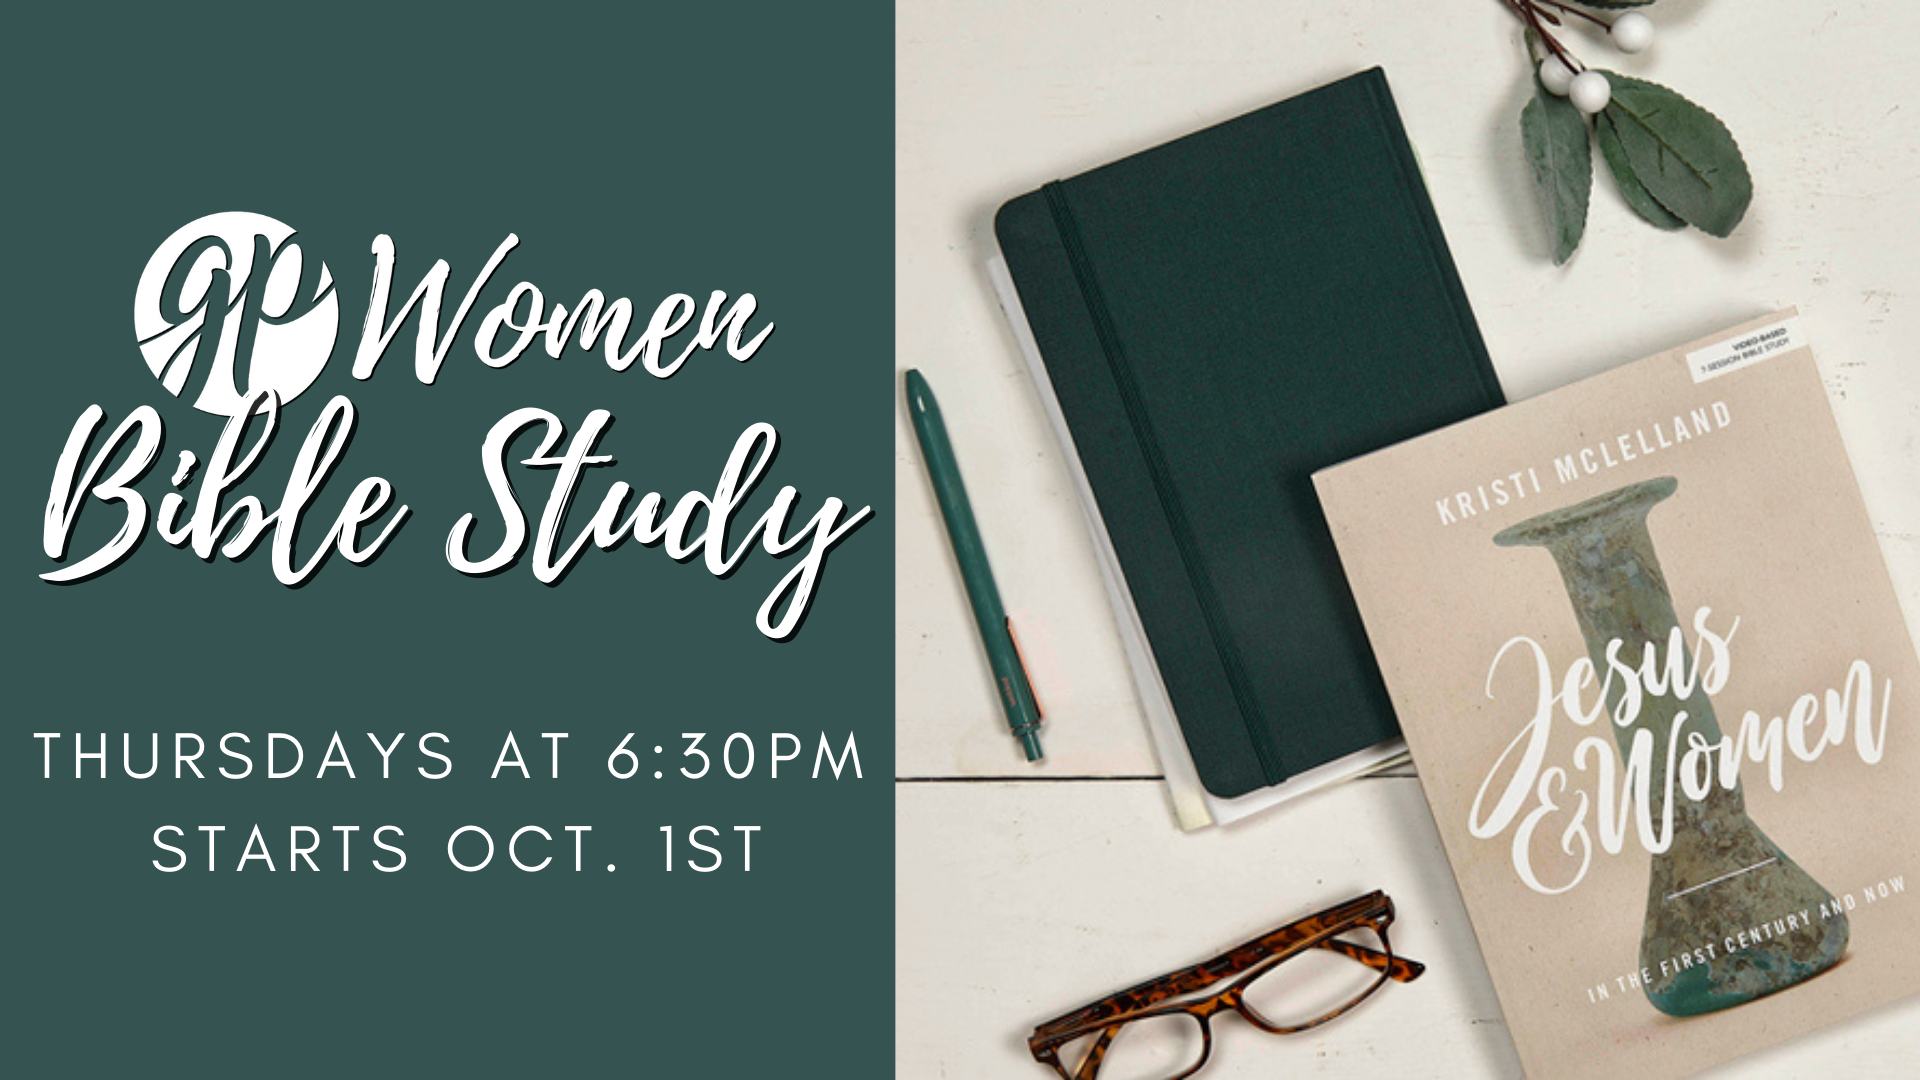 Women Bible Study oct20 for ws